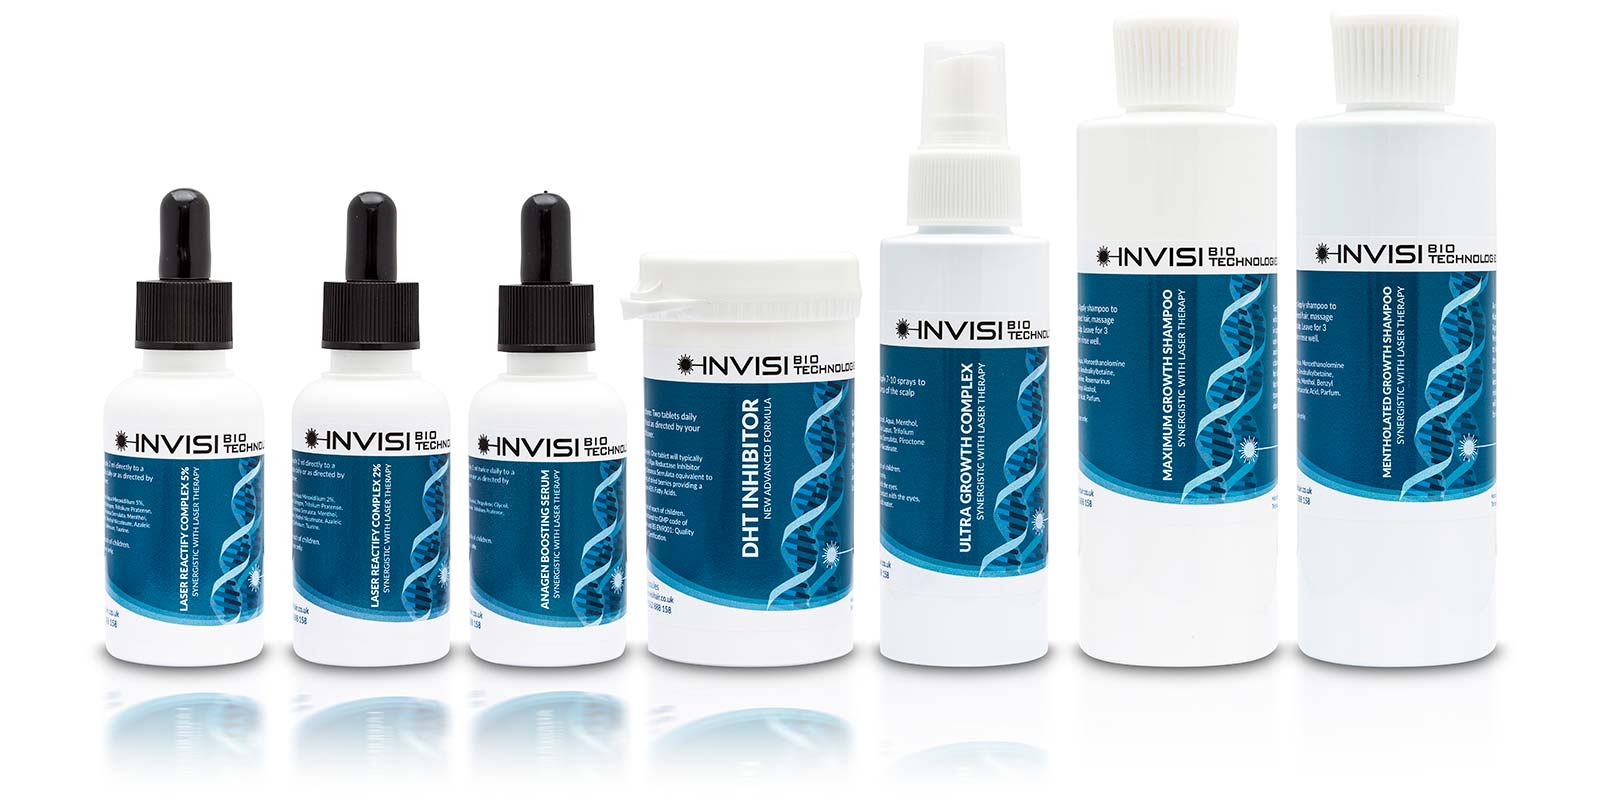 Invisi Hair Regrowth Products